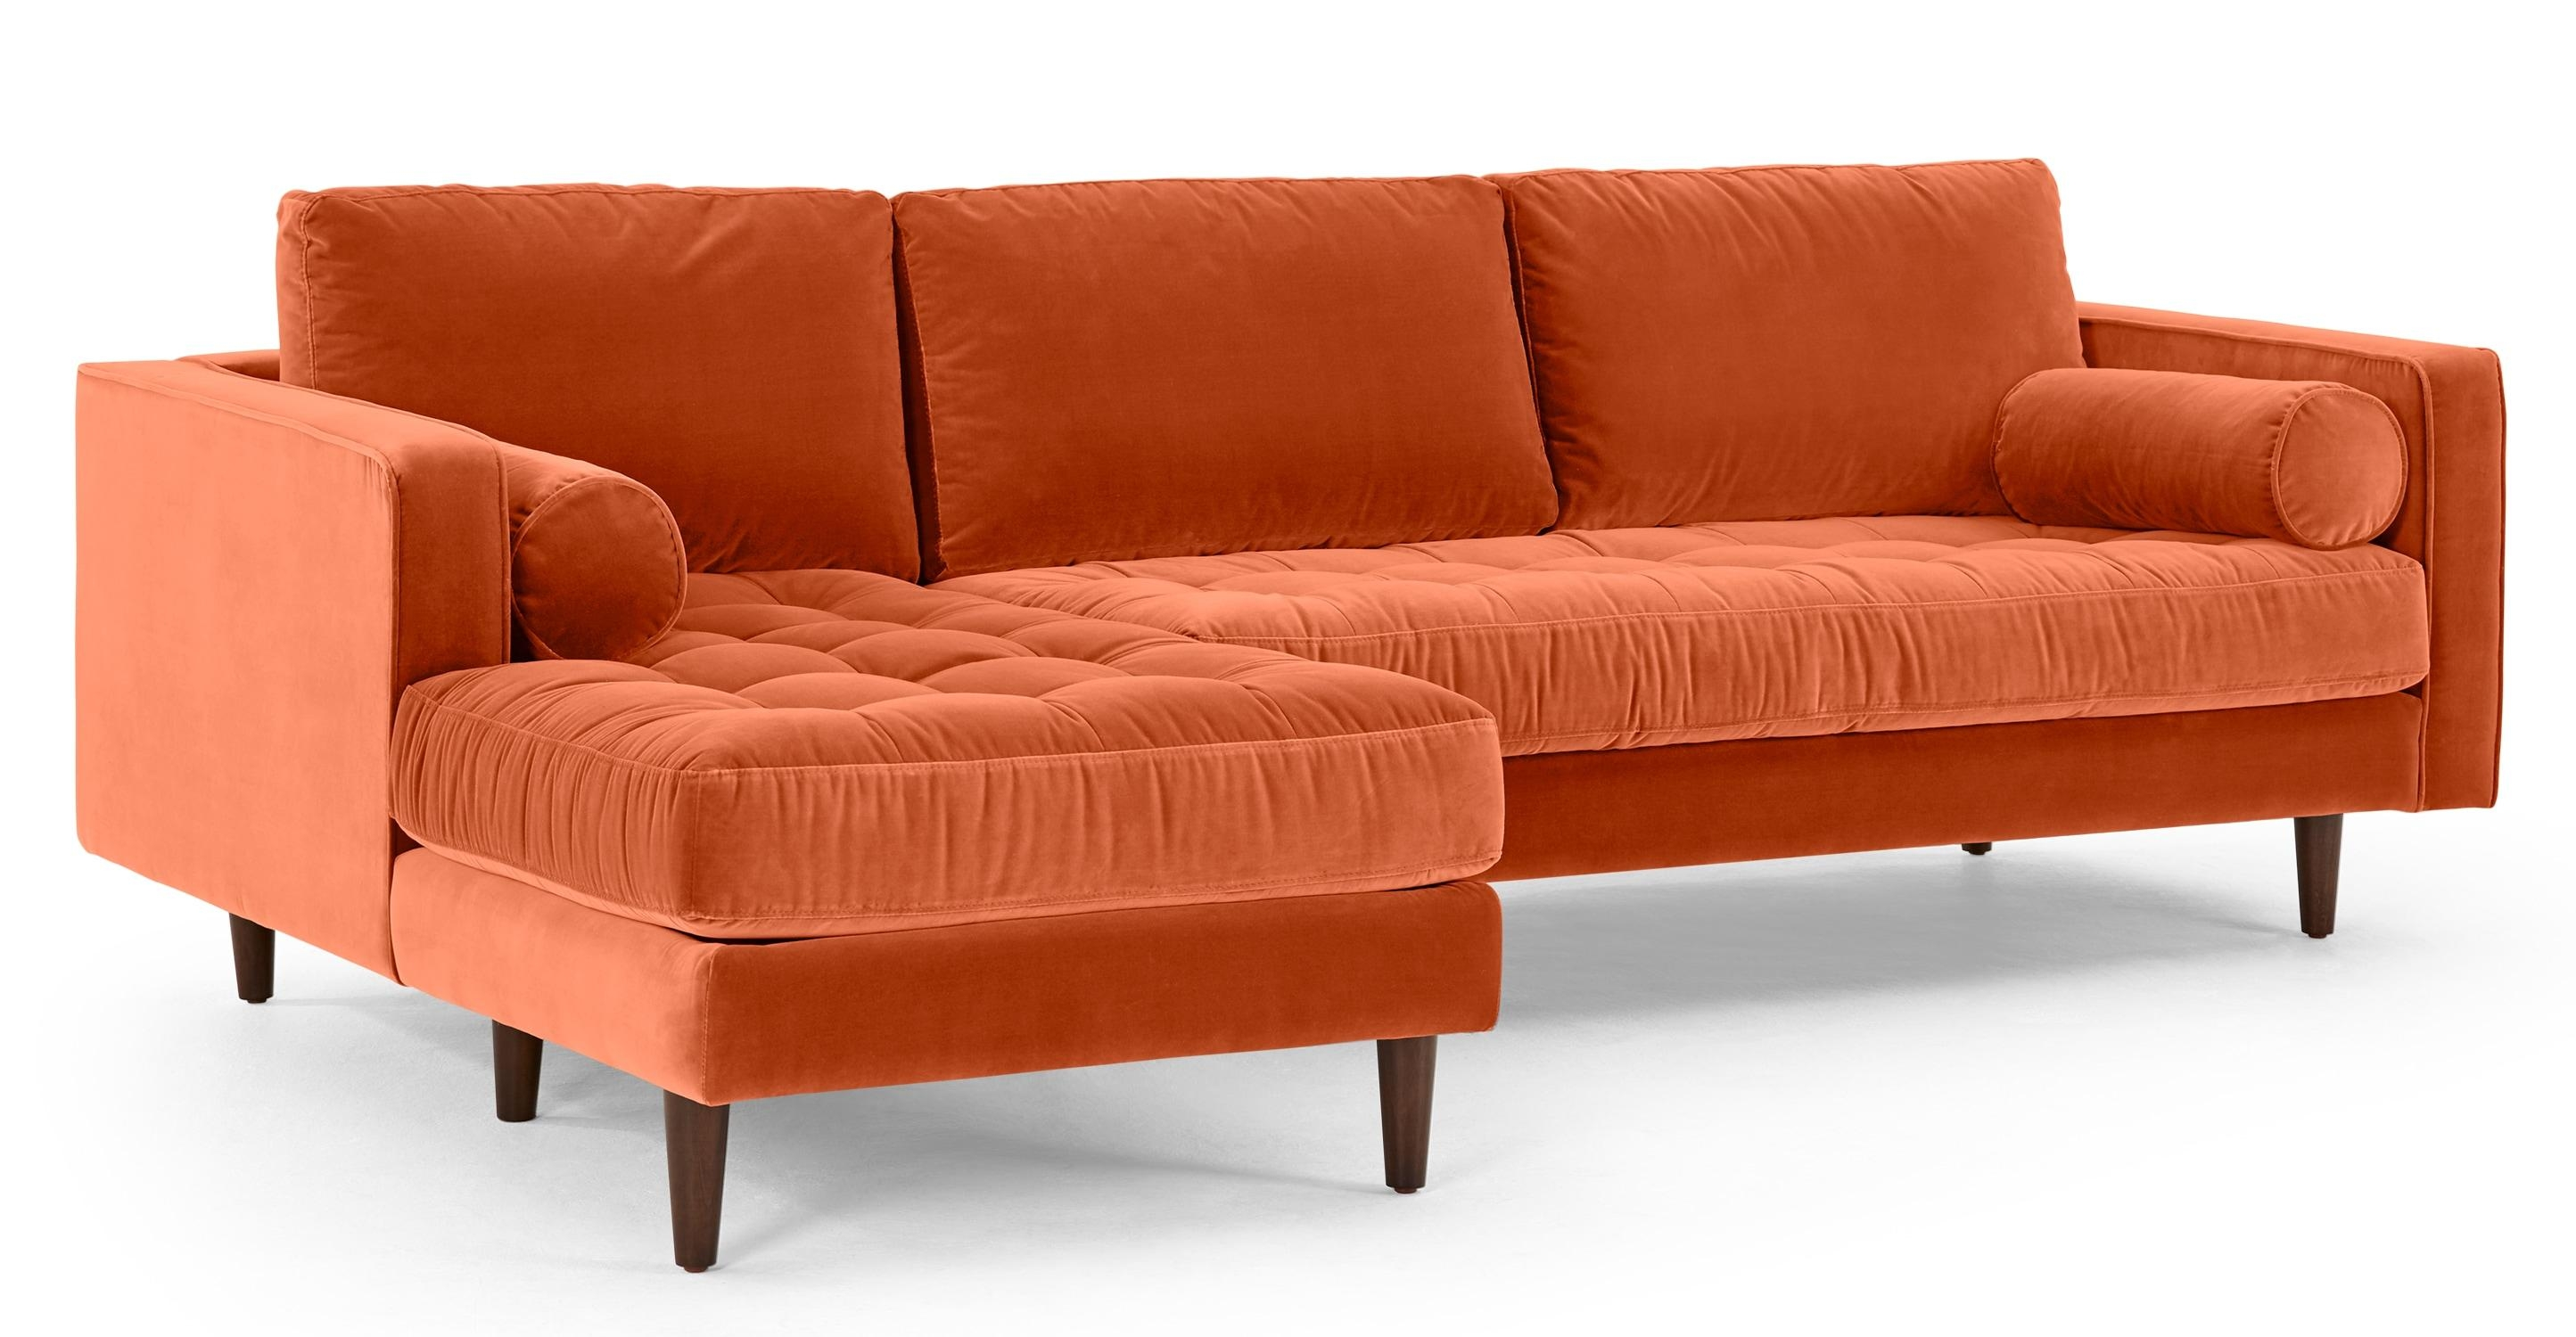 Scott 4 Seater Left Hand Facing Chaise End Sofa, Burnt Orange Throughout Burnt Orange Sofas (Image 14 of 20)